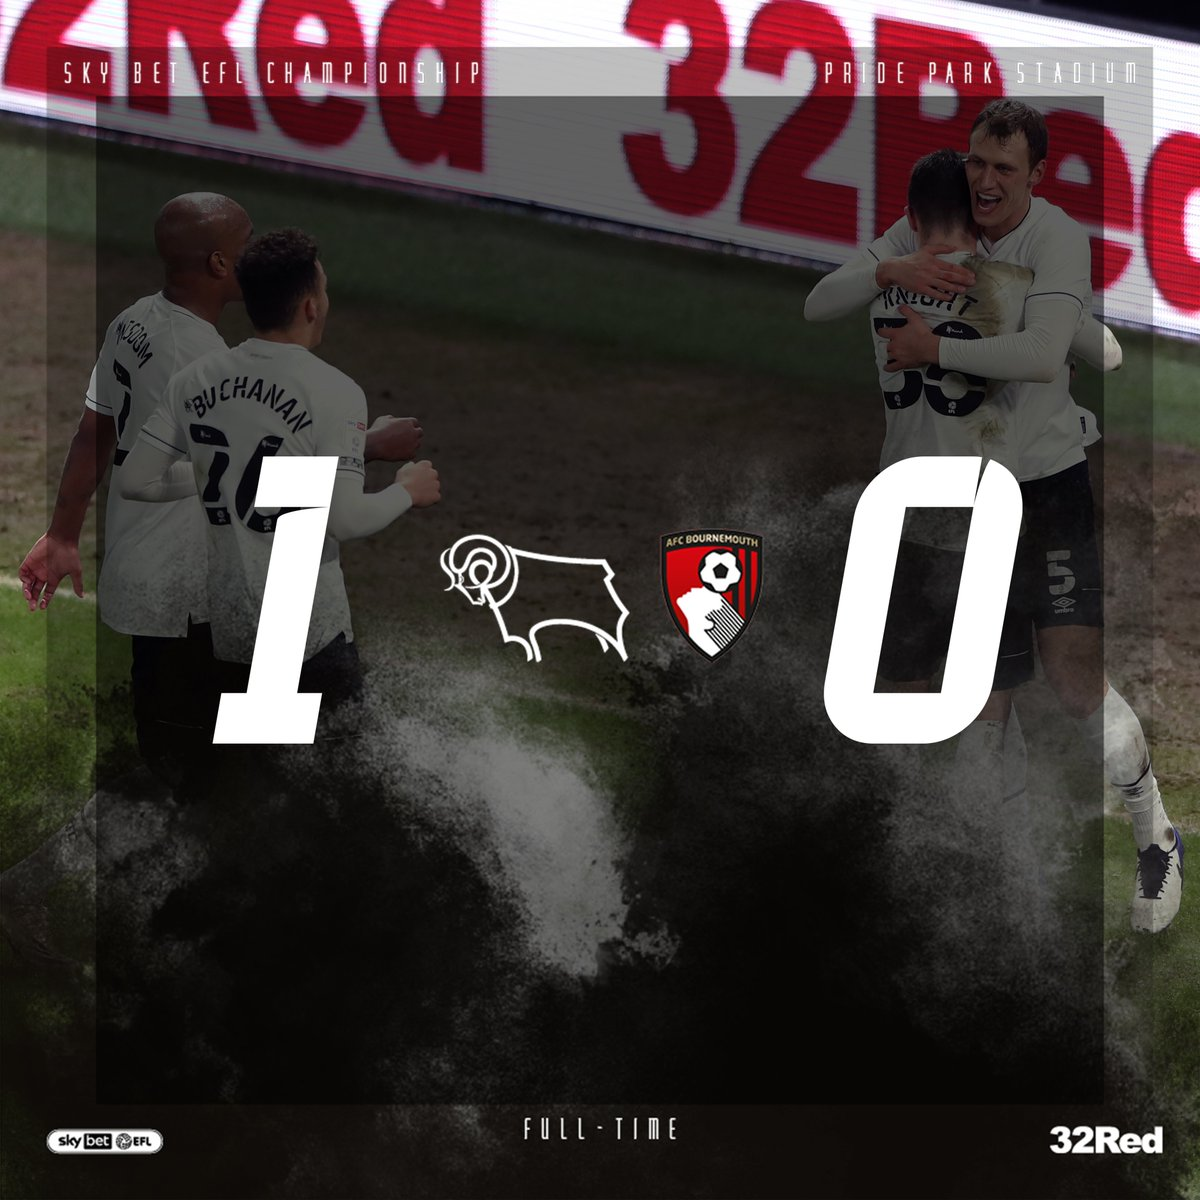 Replying to @dcfcofficial: A 𝗛𝗨𝗚𝗘 home win for the Rams! 🙌  🐏 1-0 🍒 #DCFCvAFCB